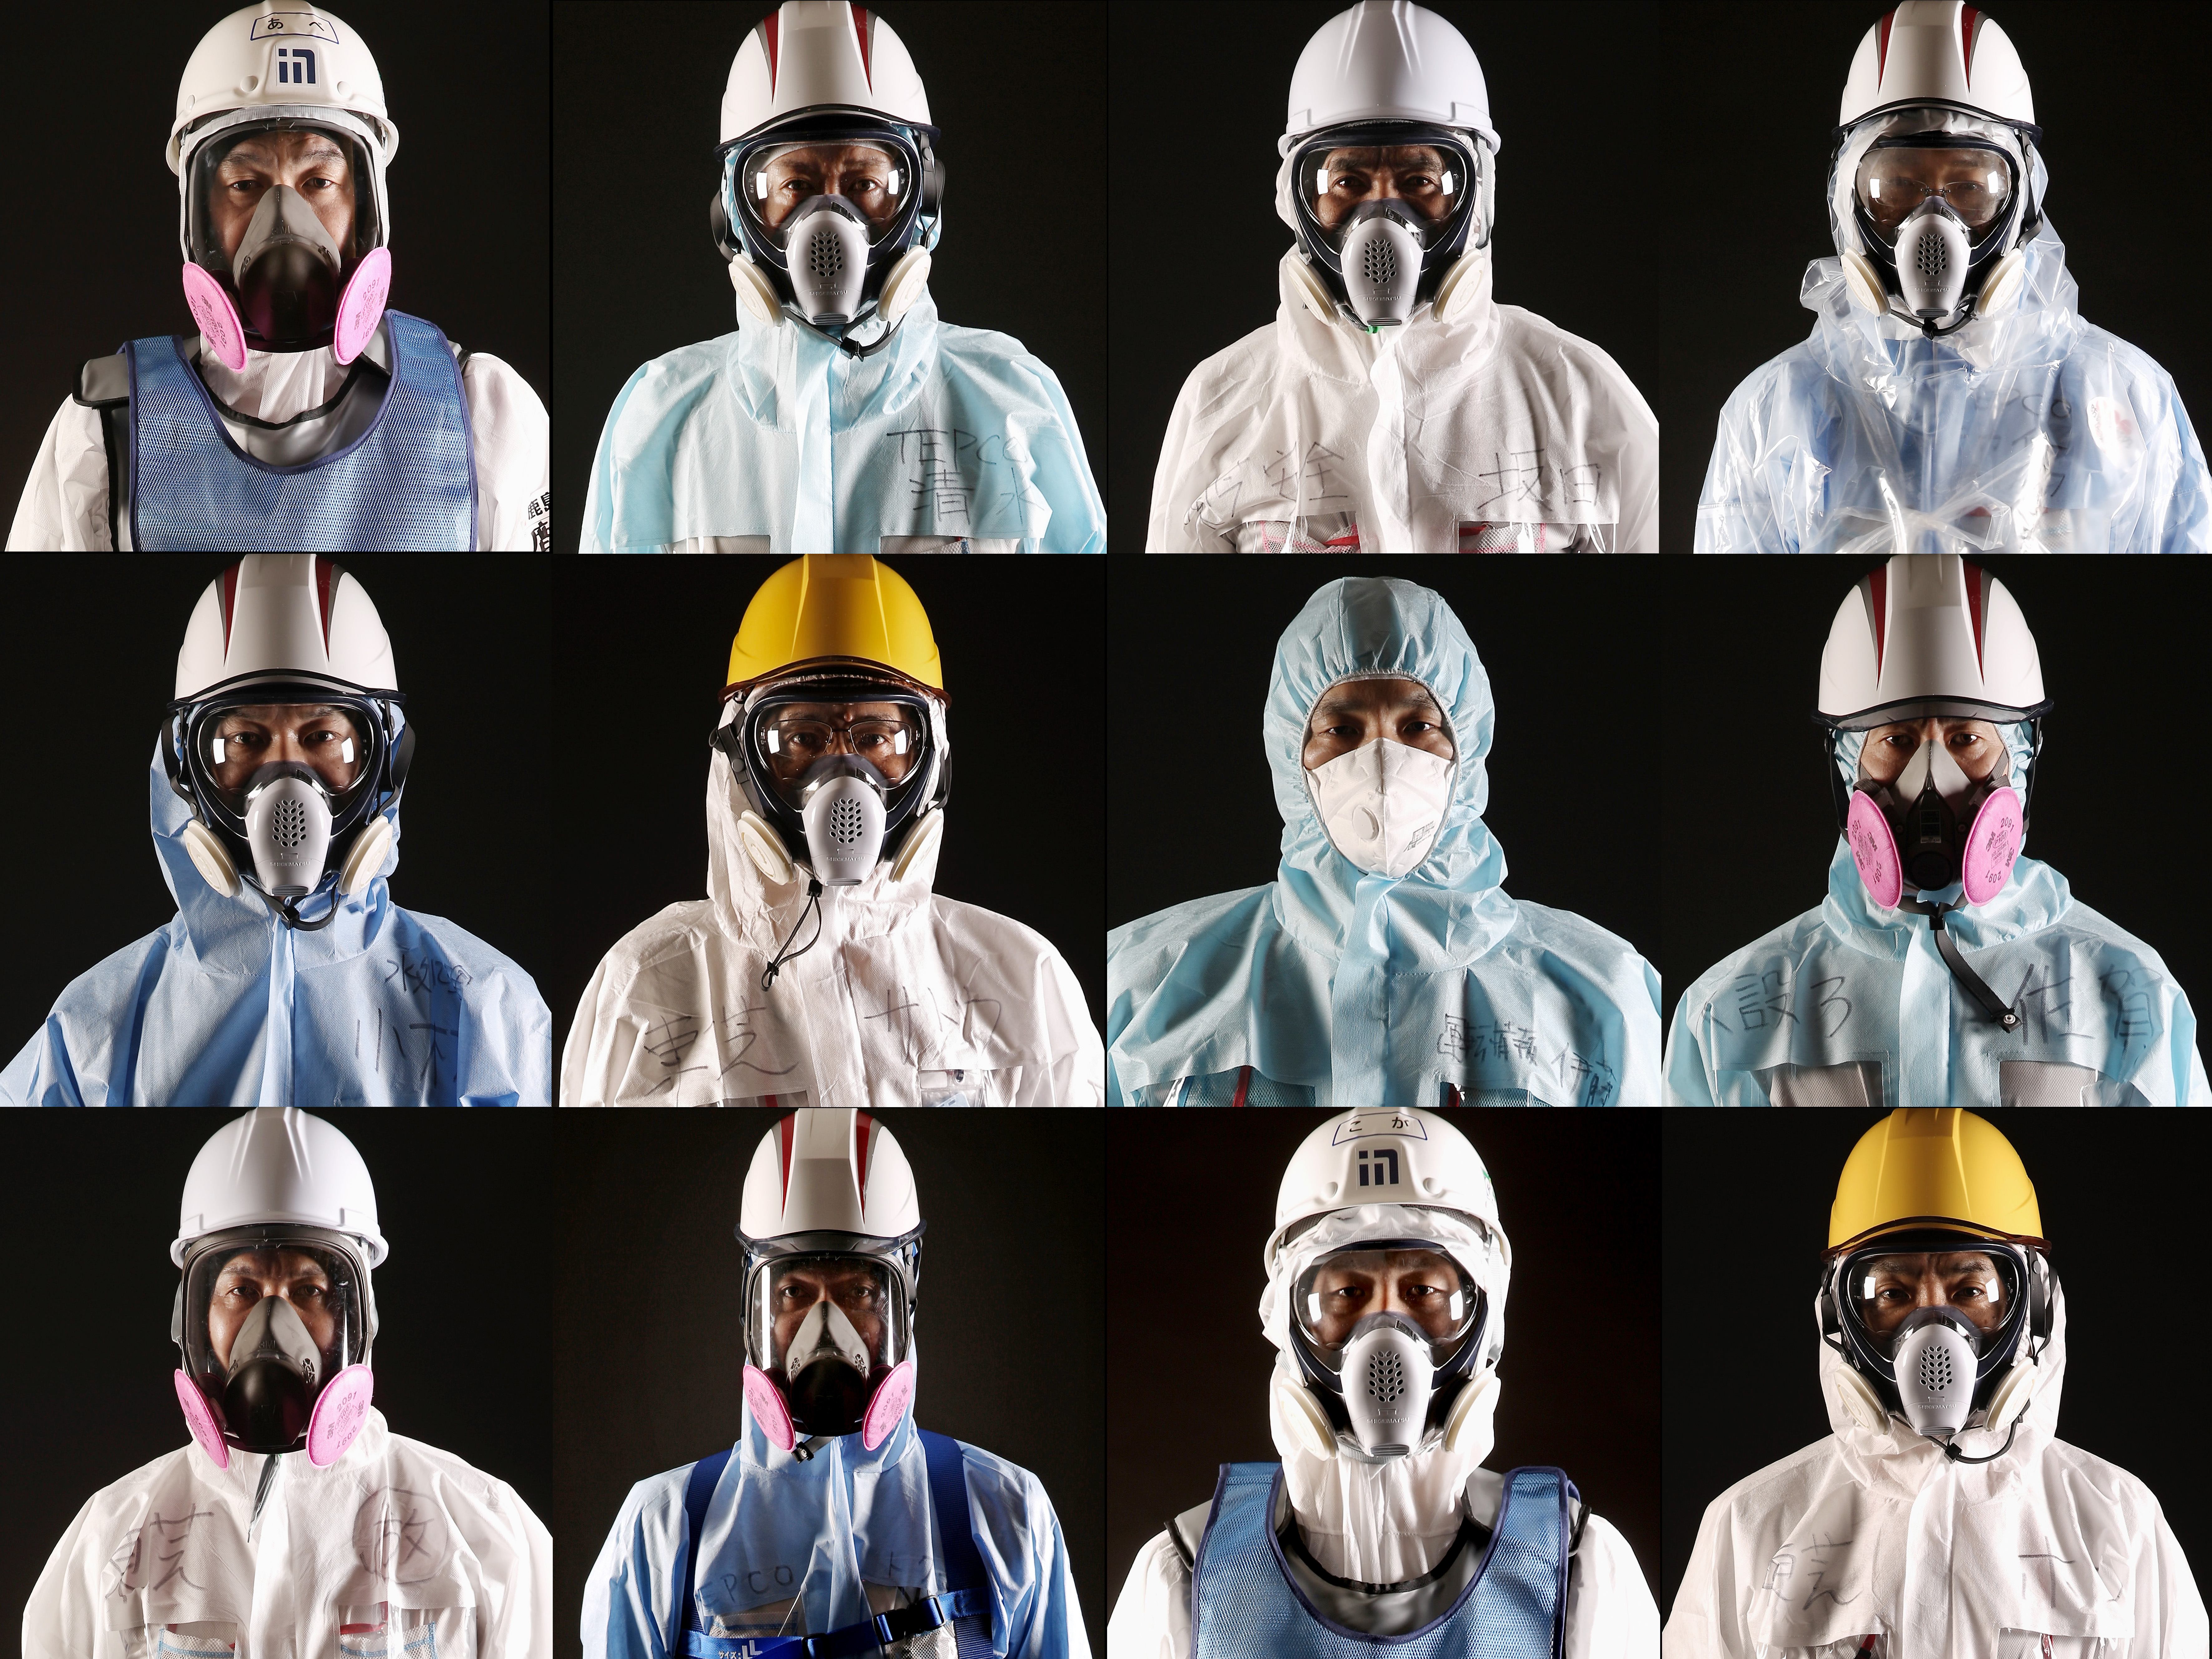 PHOTOS: The Fukushima disaster workers